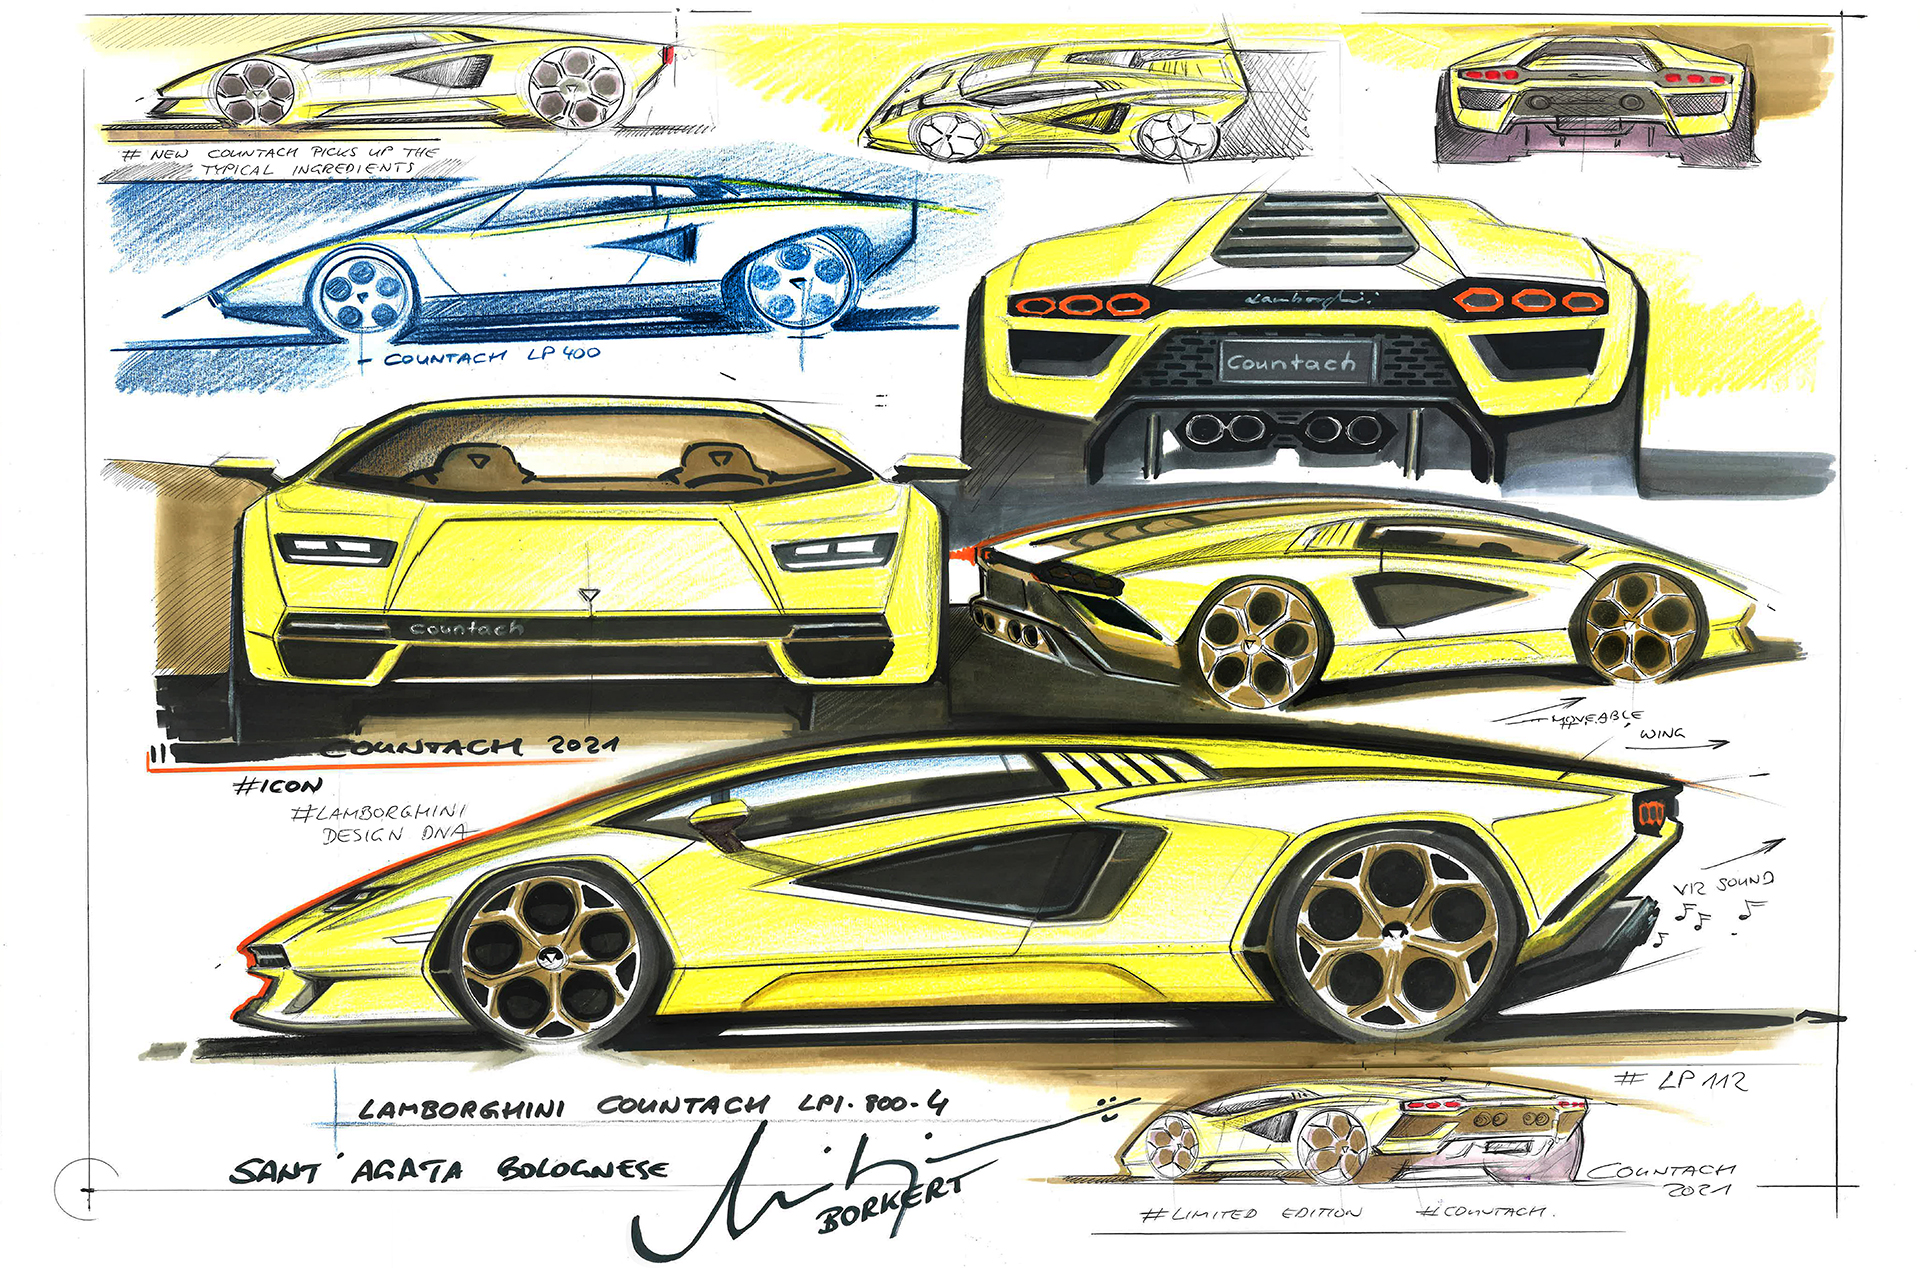 Concept drawings of the new Countach LP 400